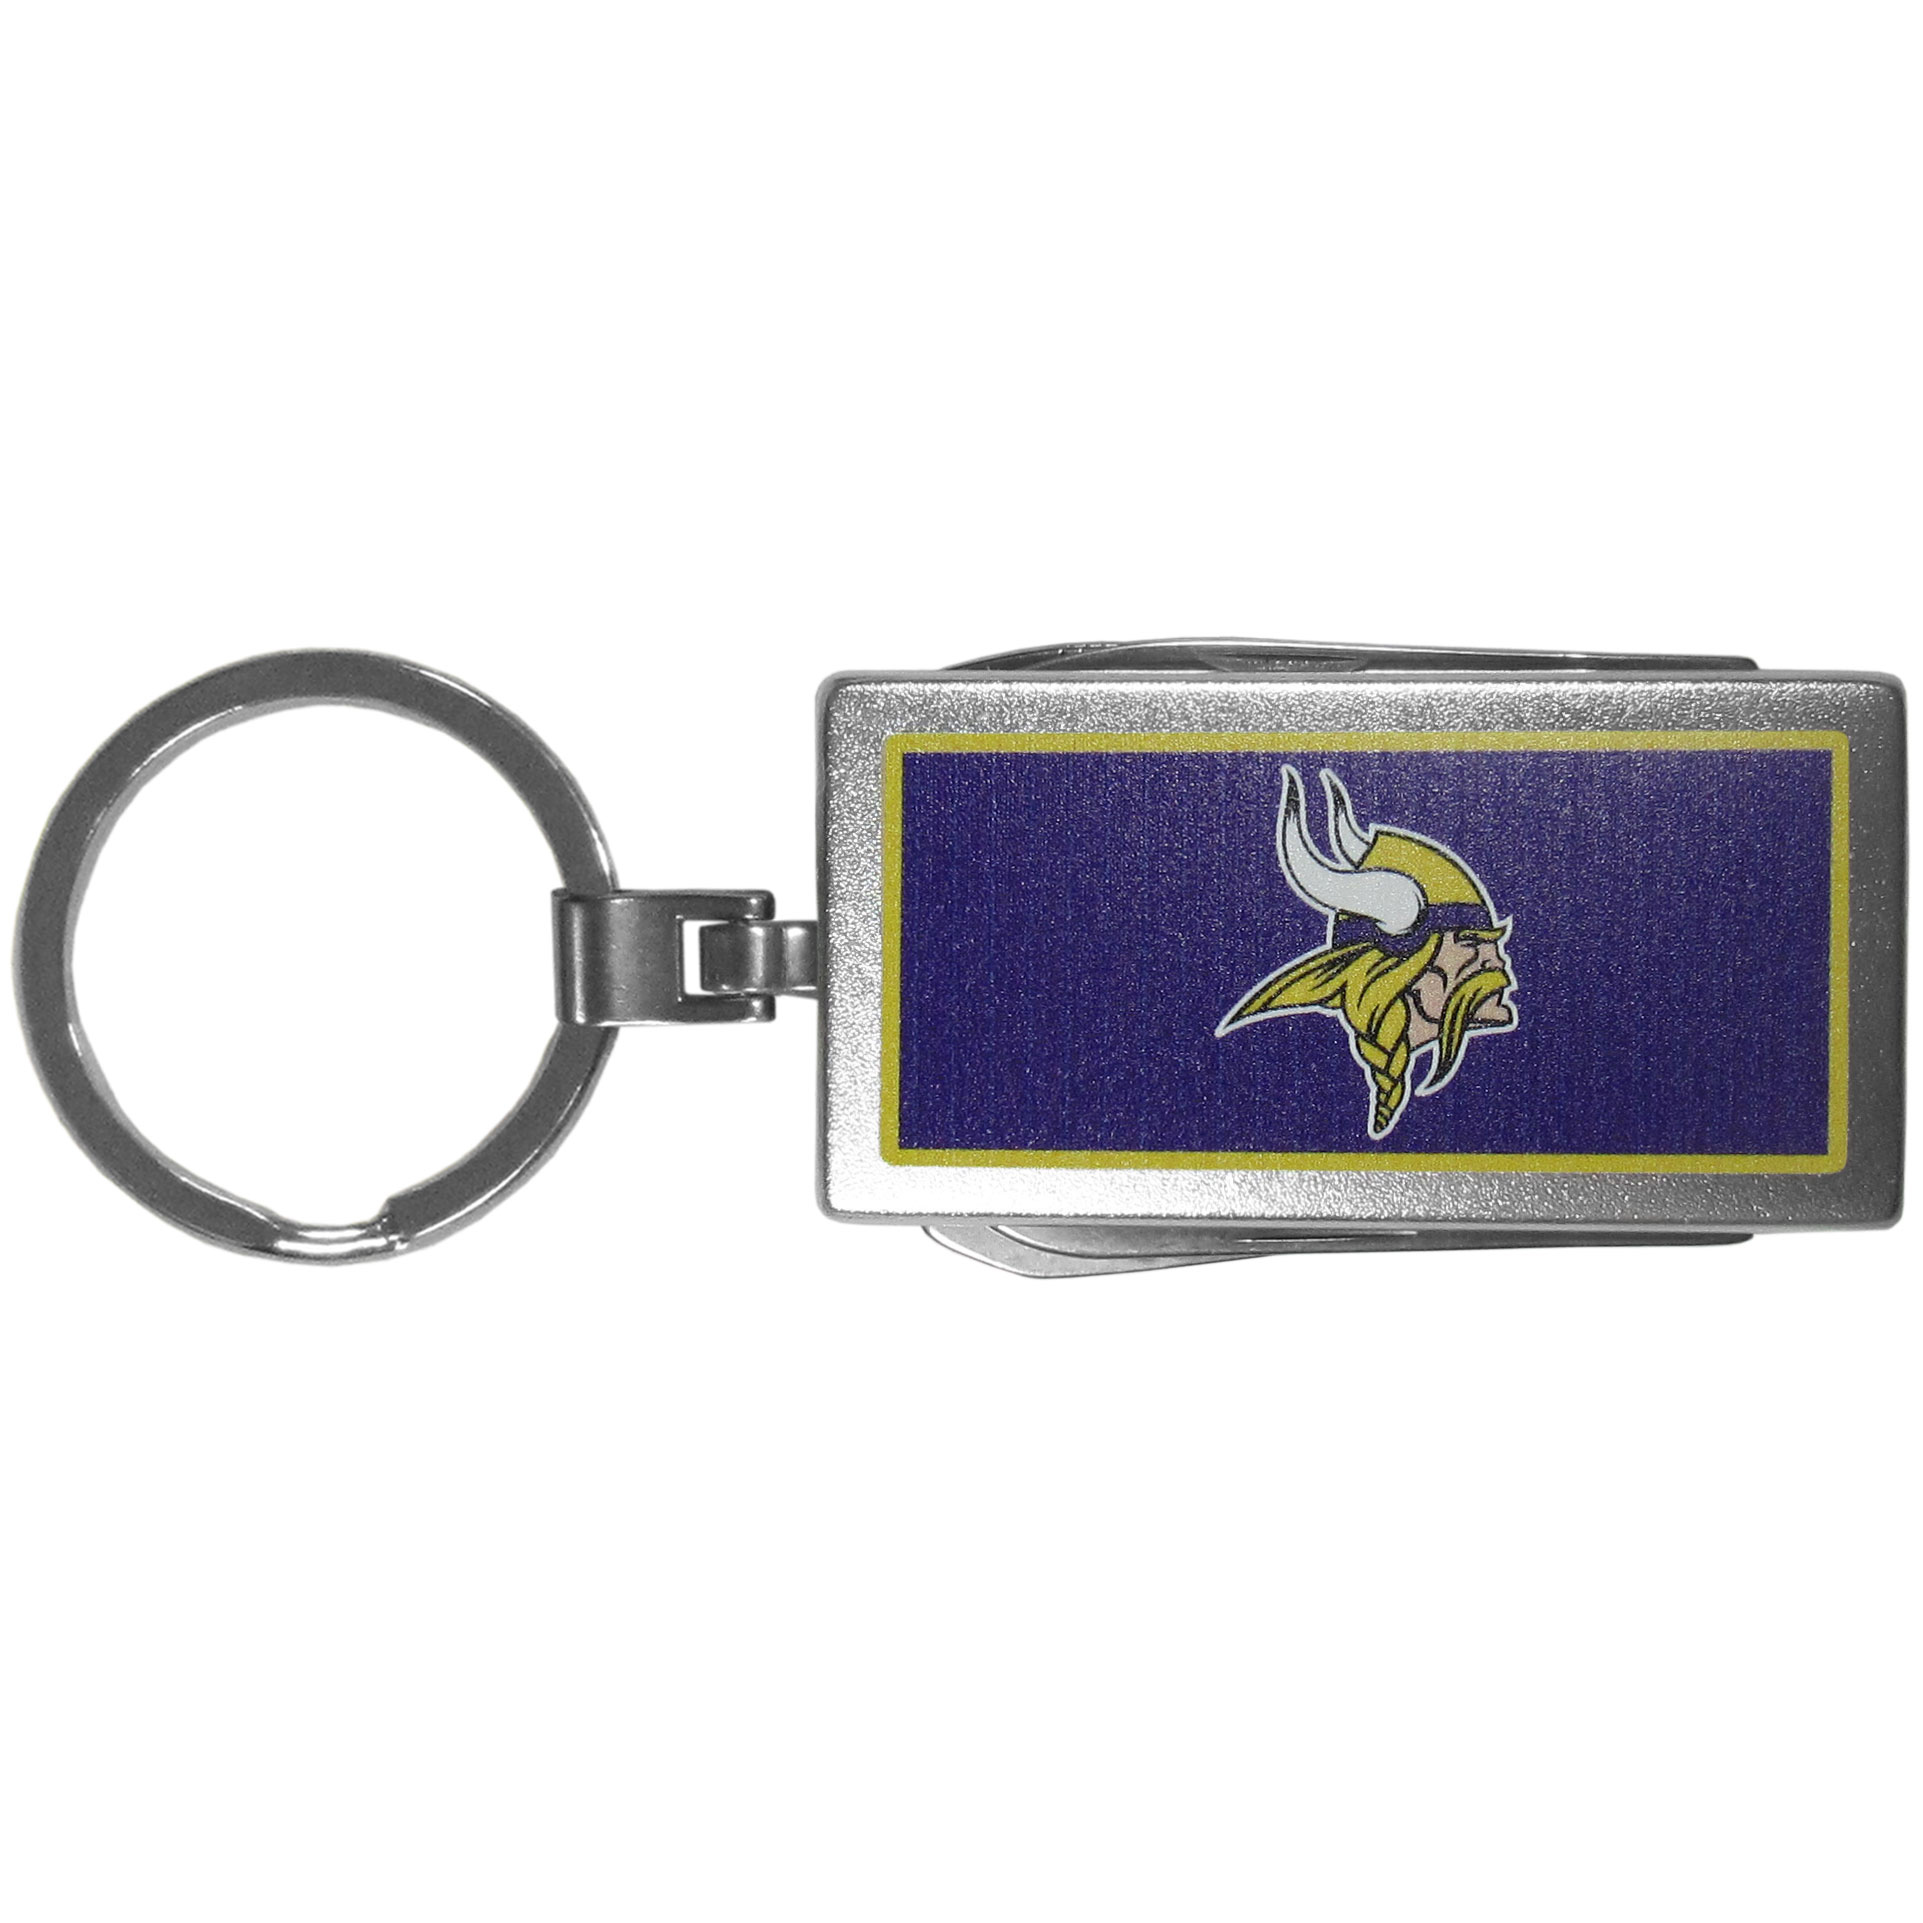 Minnesota Vikings Multi-tool Key Chain, Logo - Be the hero at the tailgate, camping, or on a Friday night with your Minnesota Vikings Multi-Tool Keychain which comes complete with bottle opener, scissors, knife, nail file and screw driver. Be it opening a package or a beverage Siskiyou's Multi-Tool Keychain goes wherever your keys do. The keychain hangs at 4 inches long when closed.